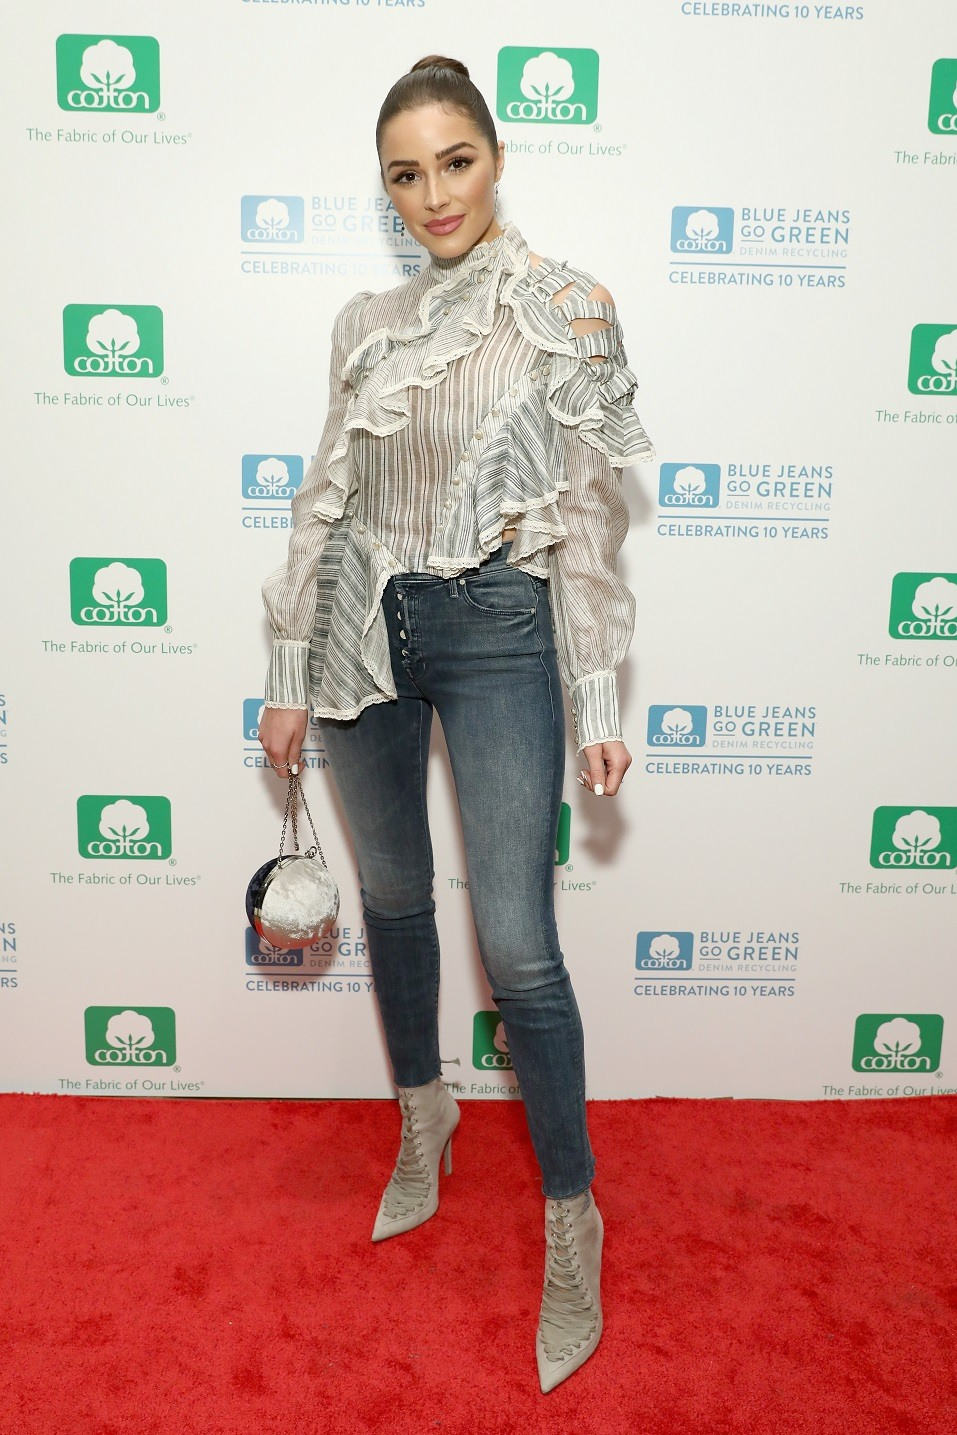 Actress Olivia Culpo attends Cotton Incorporated's celebration of 10 Years of the Blue Jeans Go